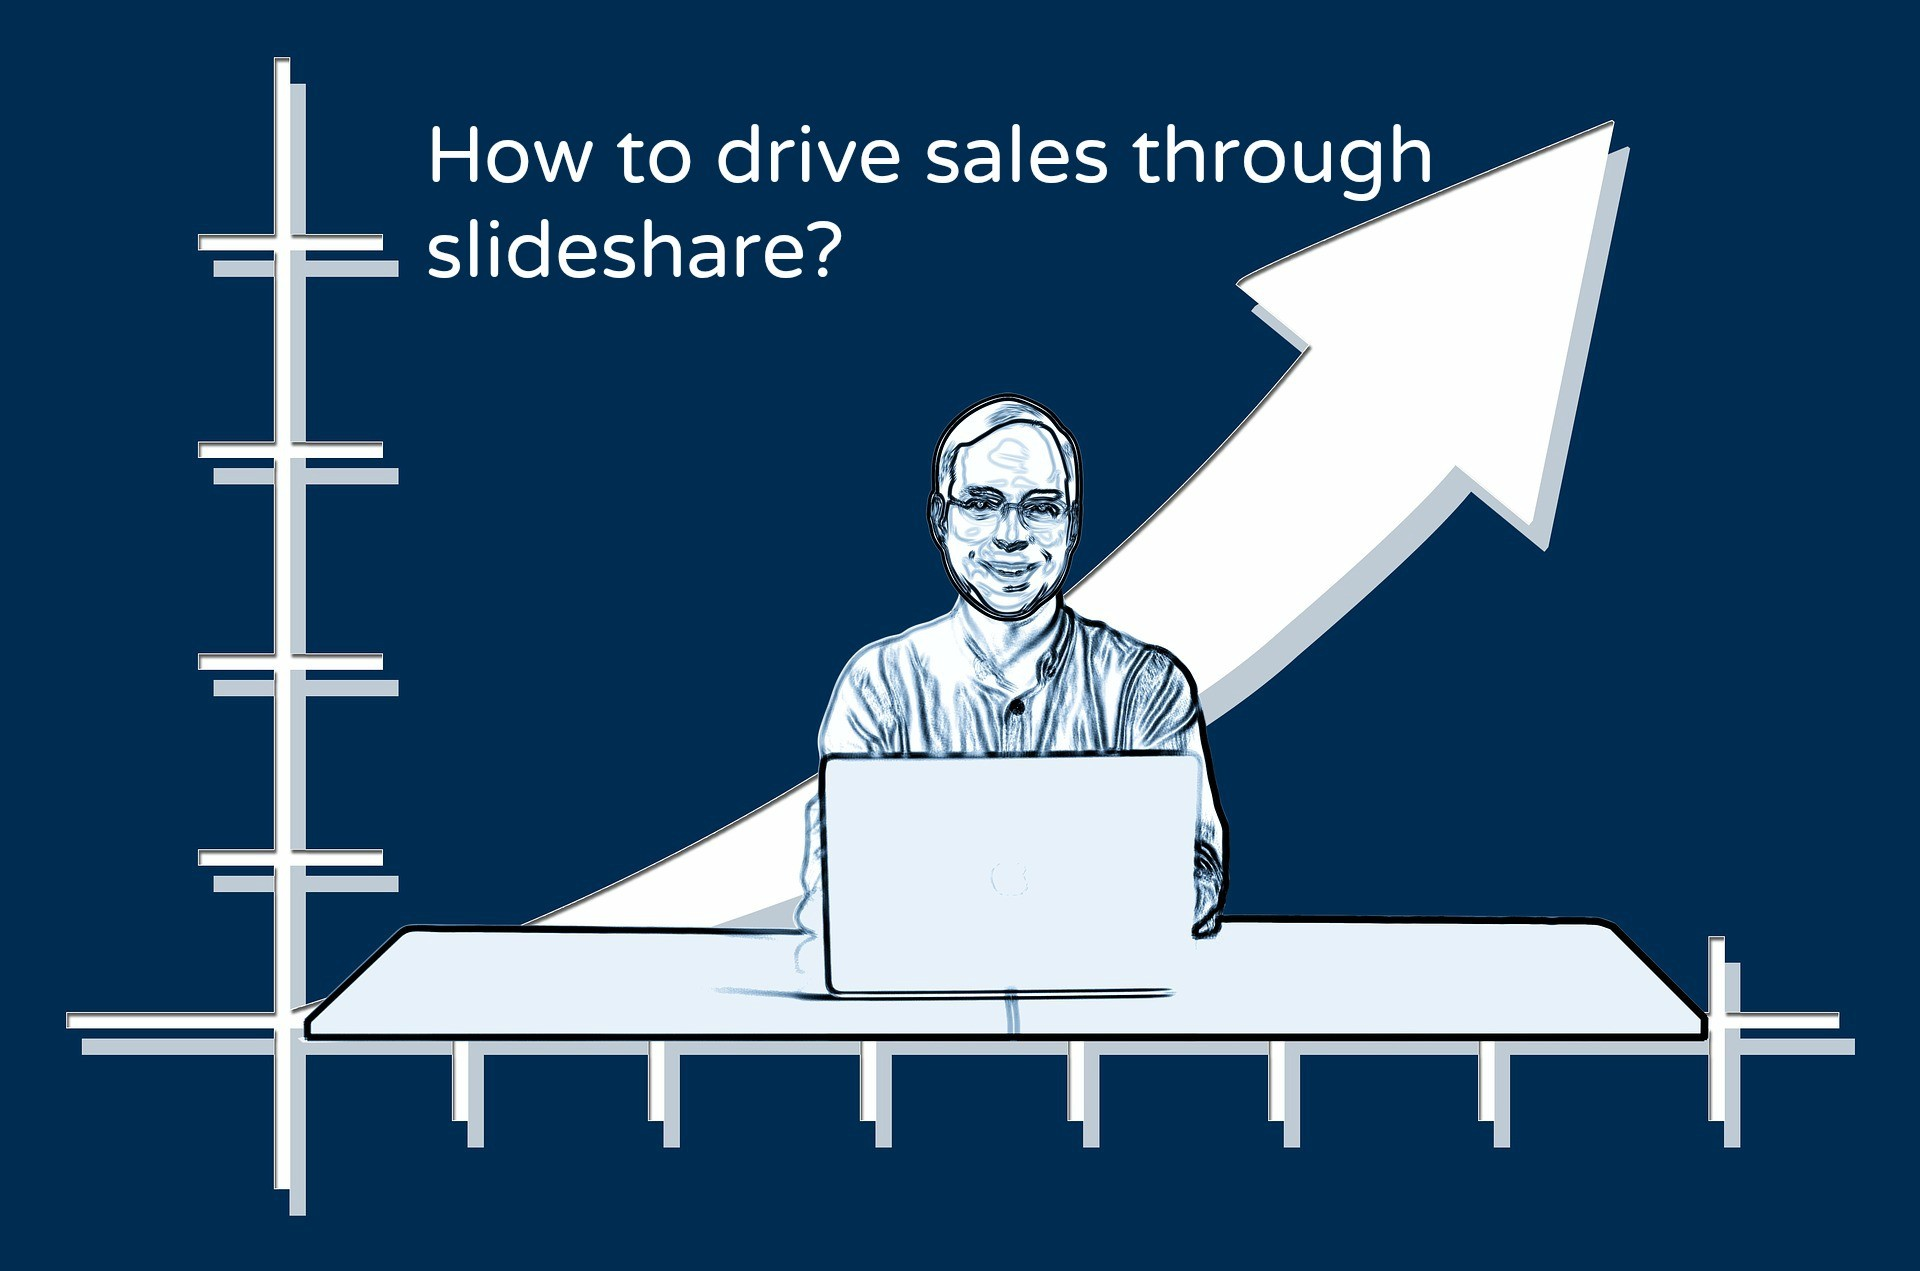 sales through slideshare